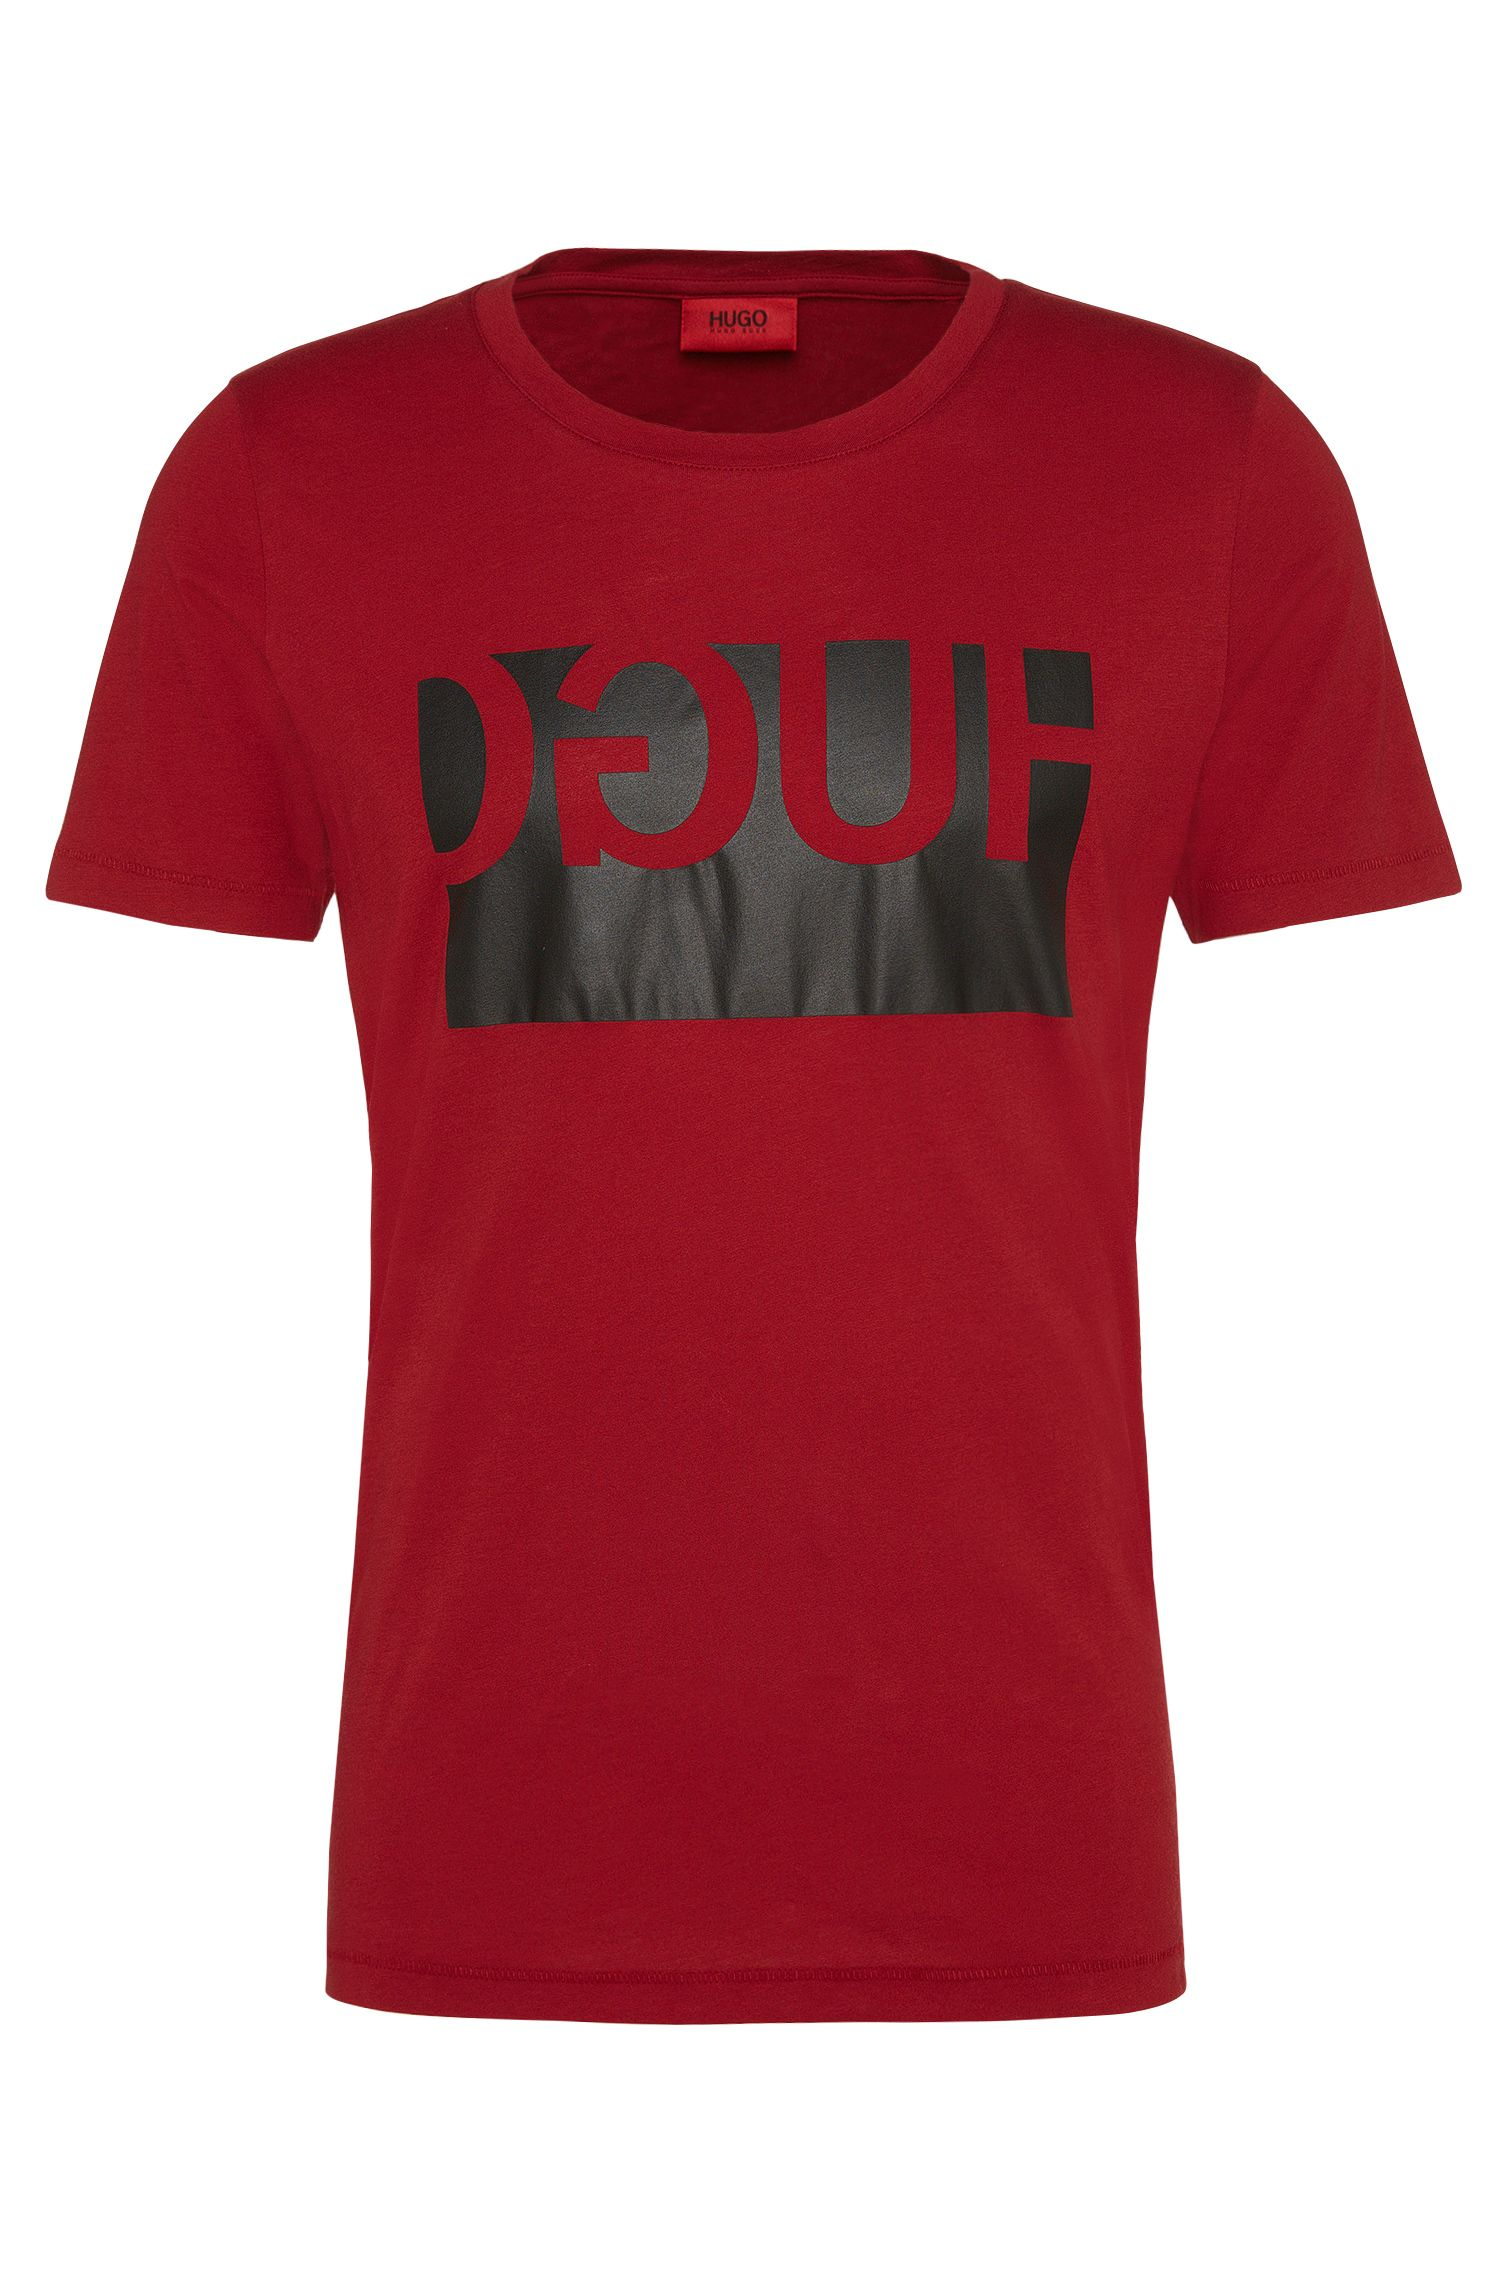 Regular-Fit T-Shirt aus Baumwolle mit Print: 'Doguh'